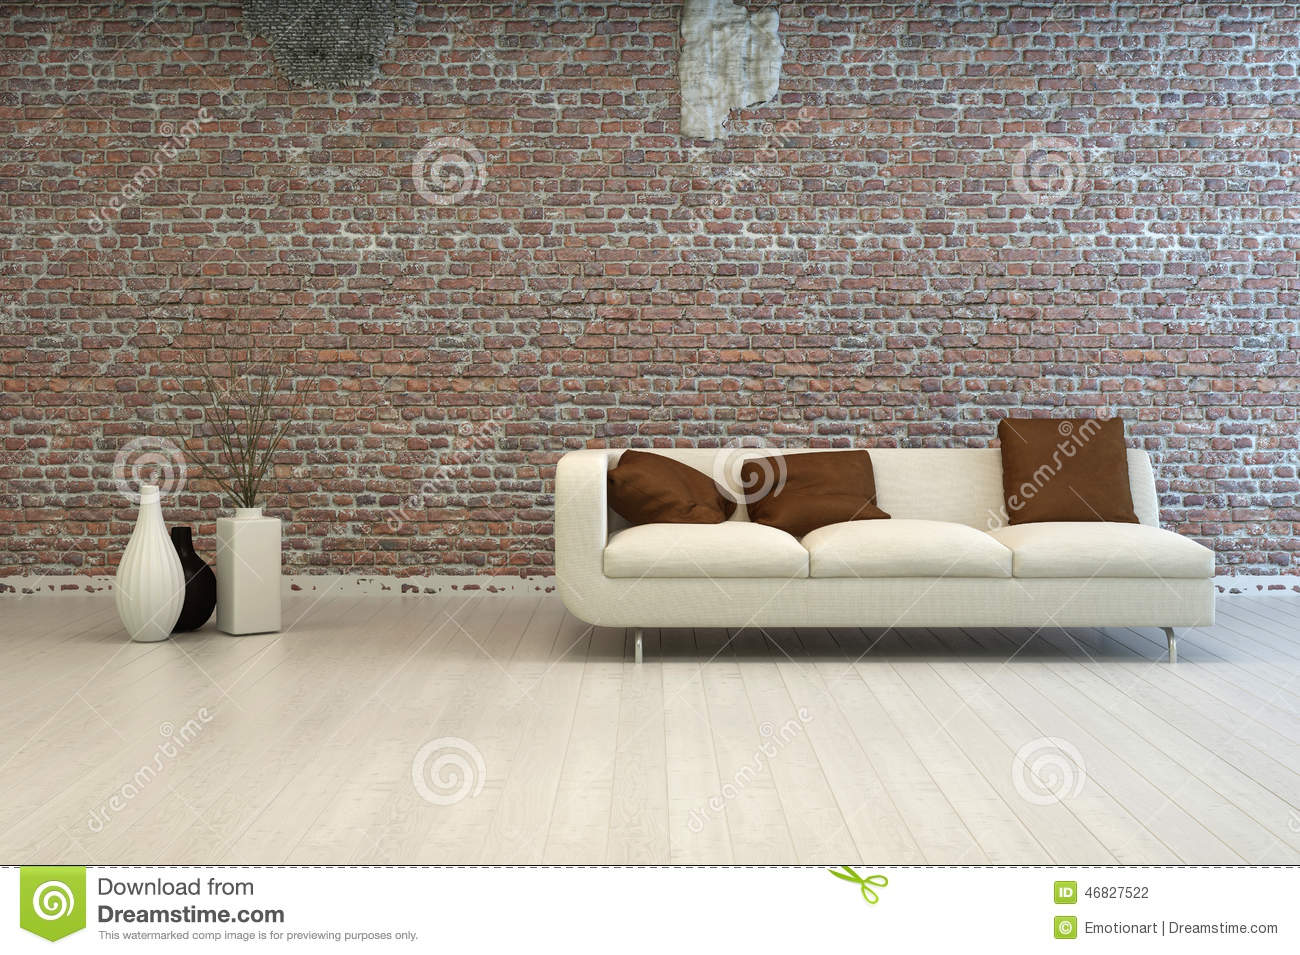 Picture of: White Love Seat With Brown Pillows At Living Room Stock Illustration Illustration Of Copyspace Background 46827522